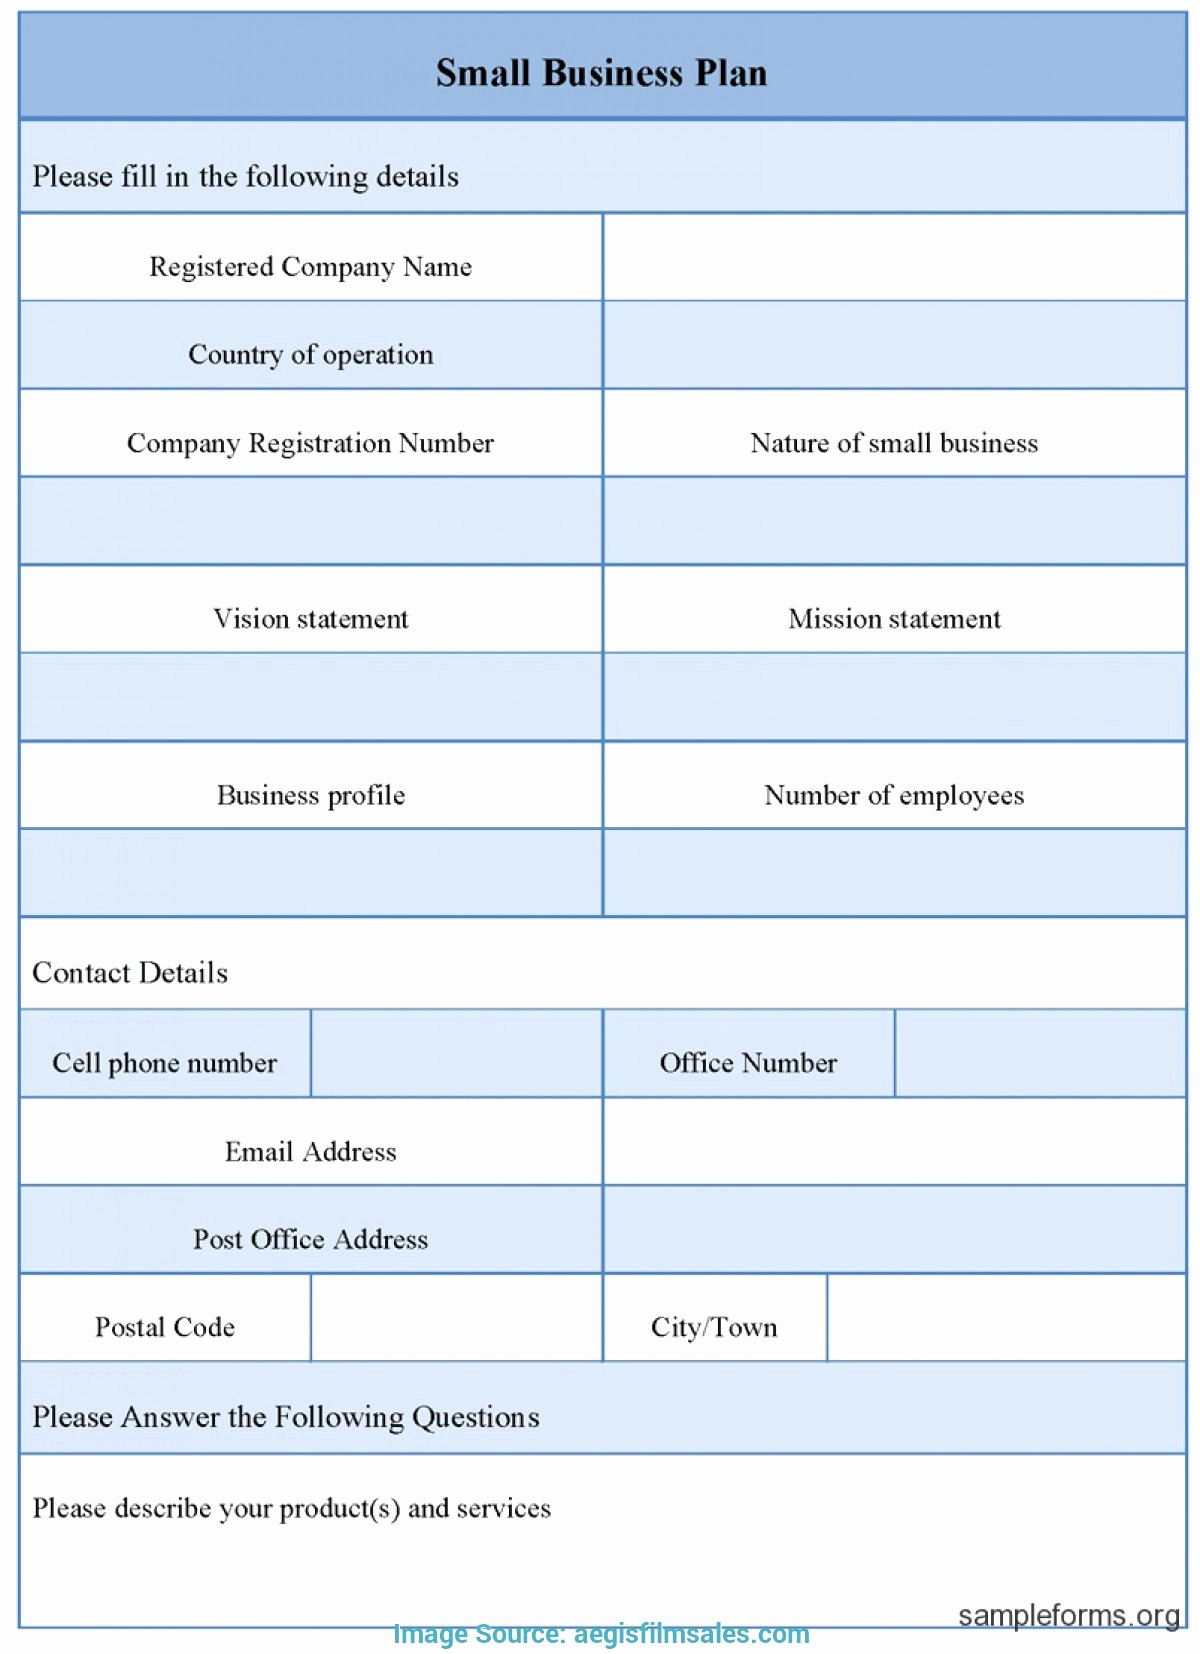 Business Plan Template .doc New Small Business Plan Template Doc New Interview Business